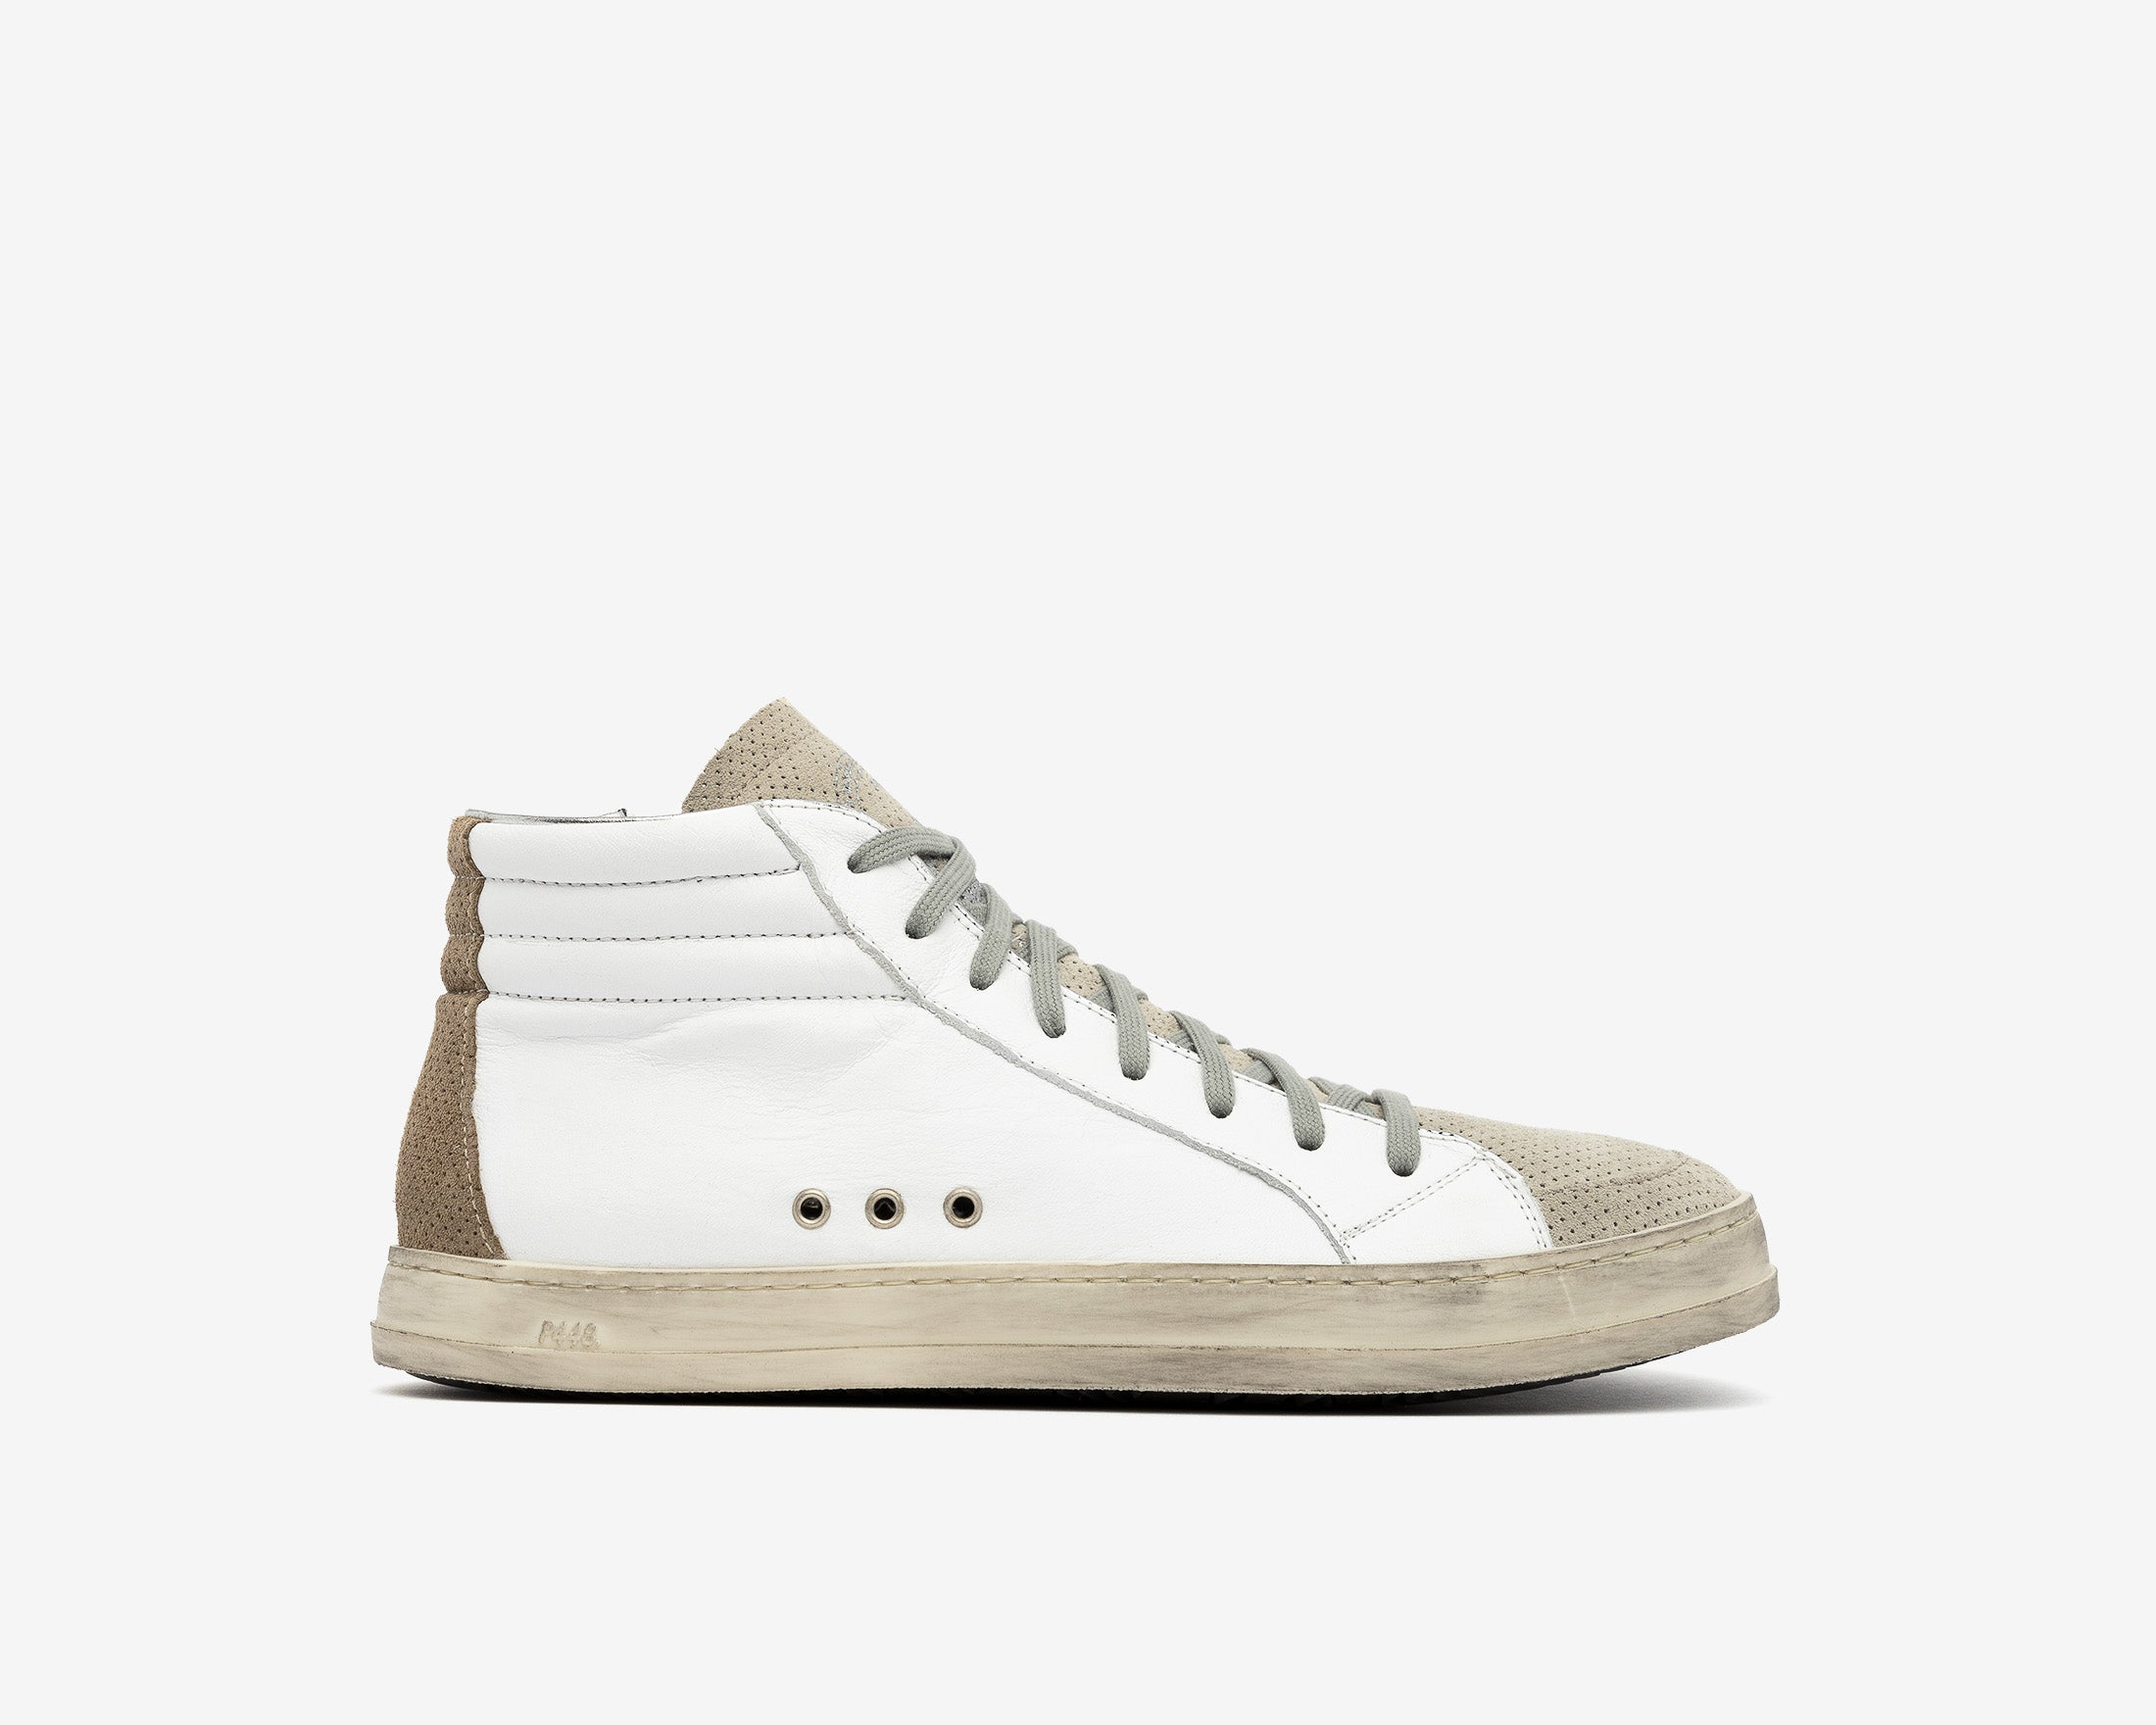 Skate High-Top Sneaker in White/Vtab - Profile